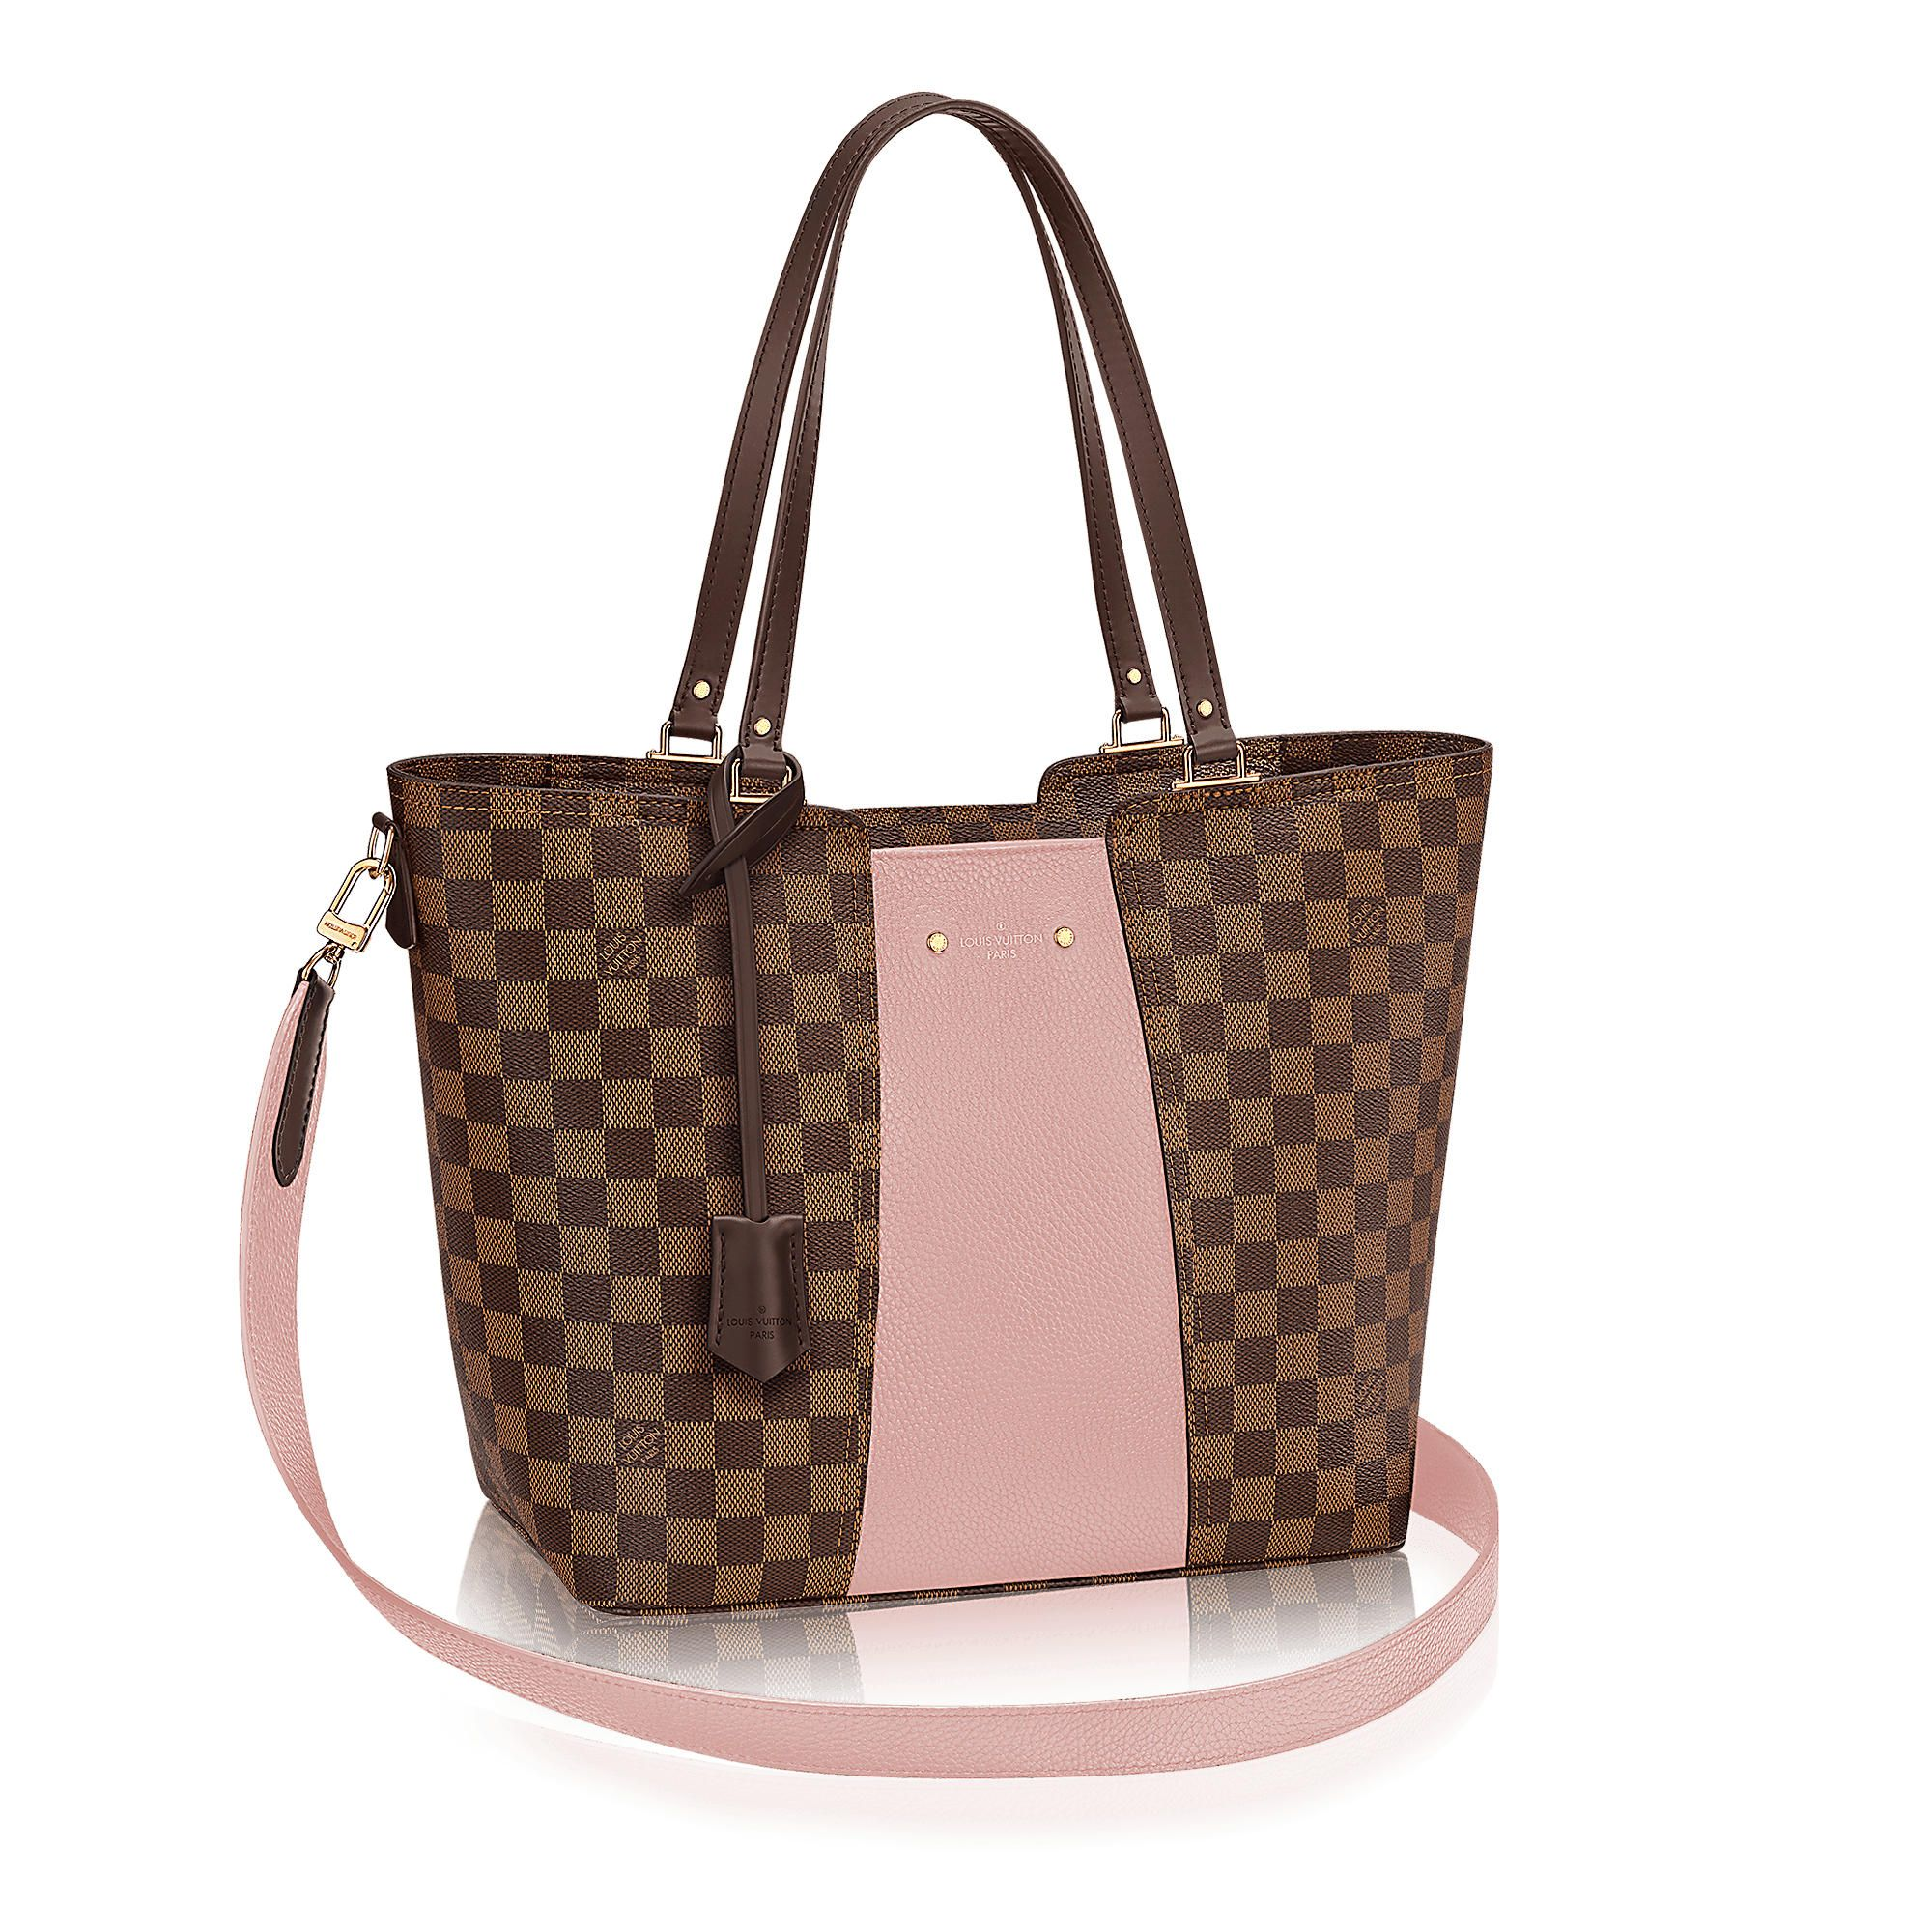 First Look Latest Lv Damier Ebene Canvas Jersey Bag 2017 New Collection Louis Vuitton Handbags